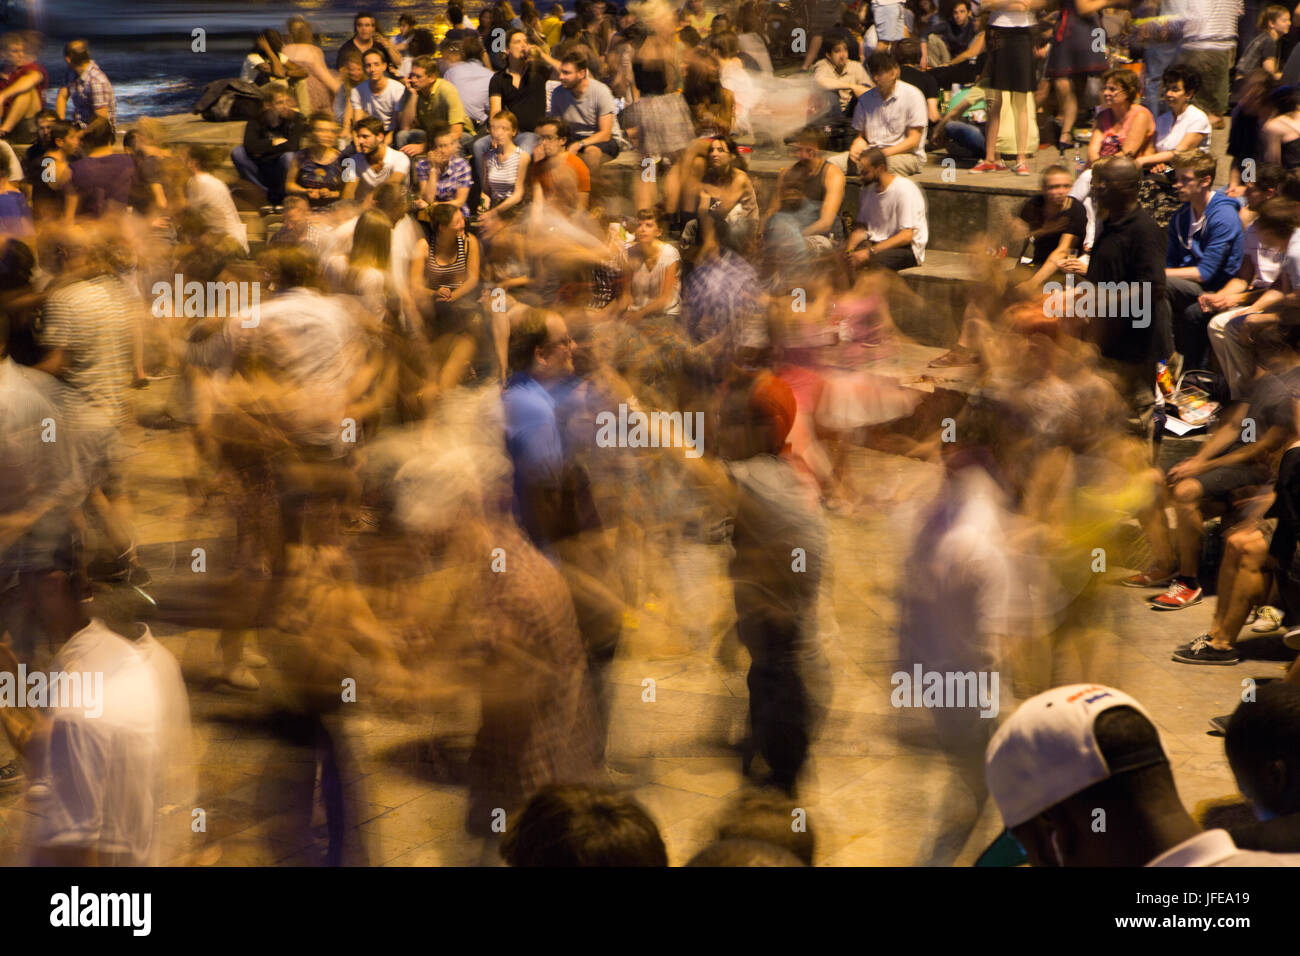 On summer nights, Parisians learn and dance the tango. - Stock Image